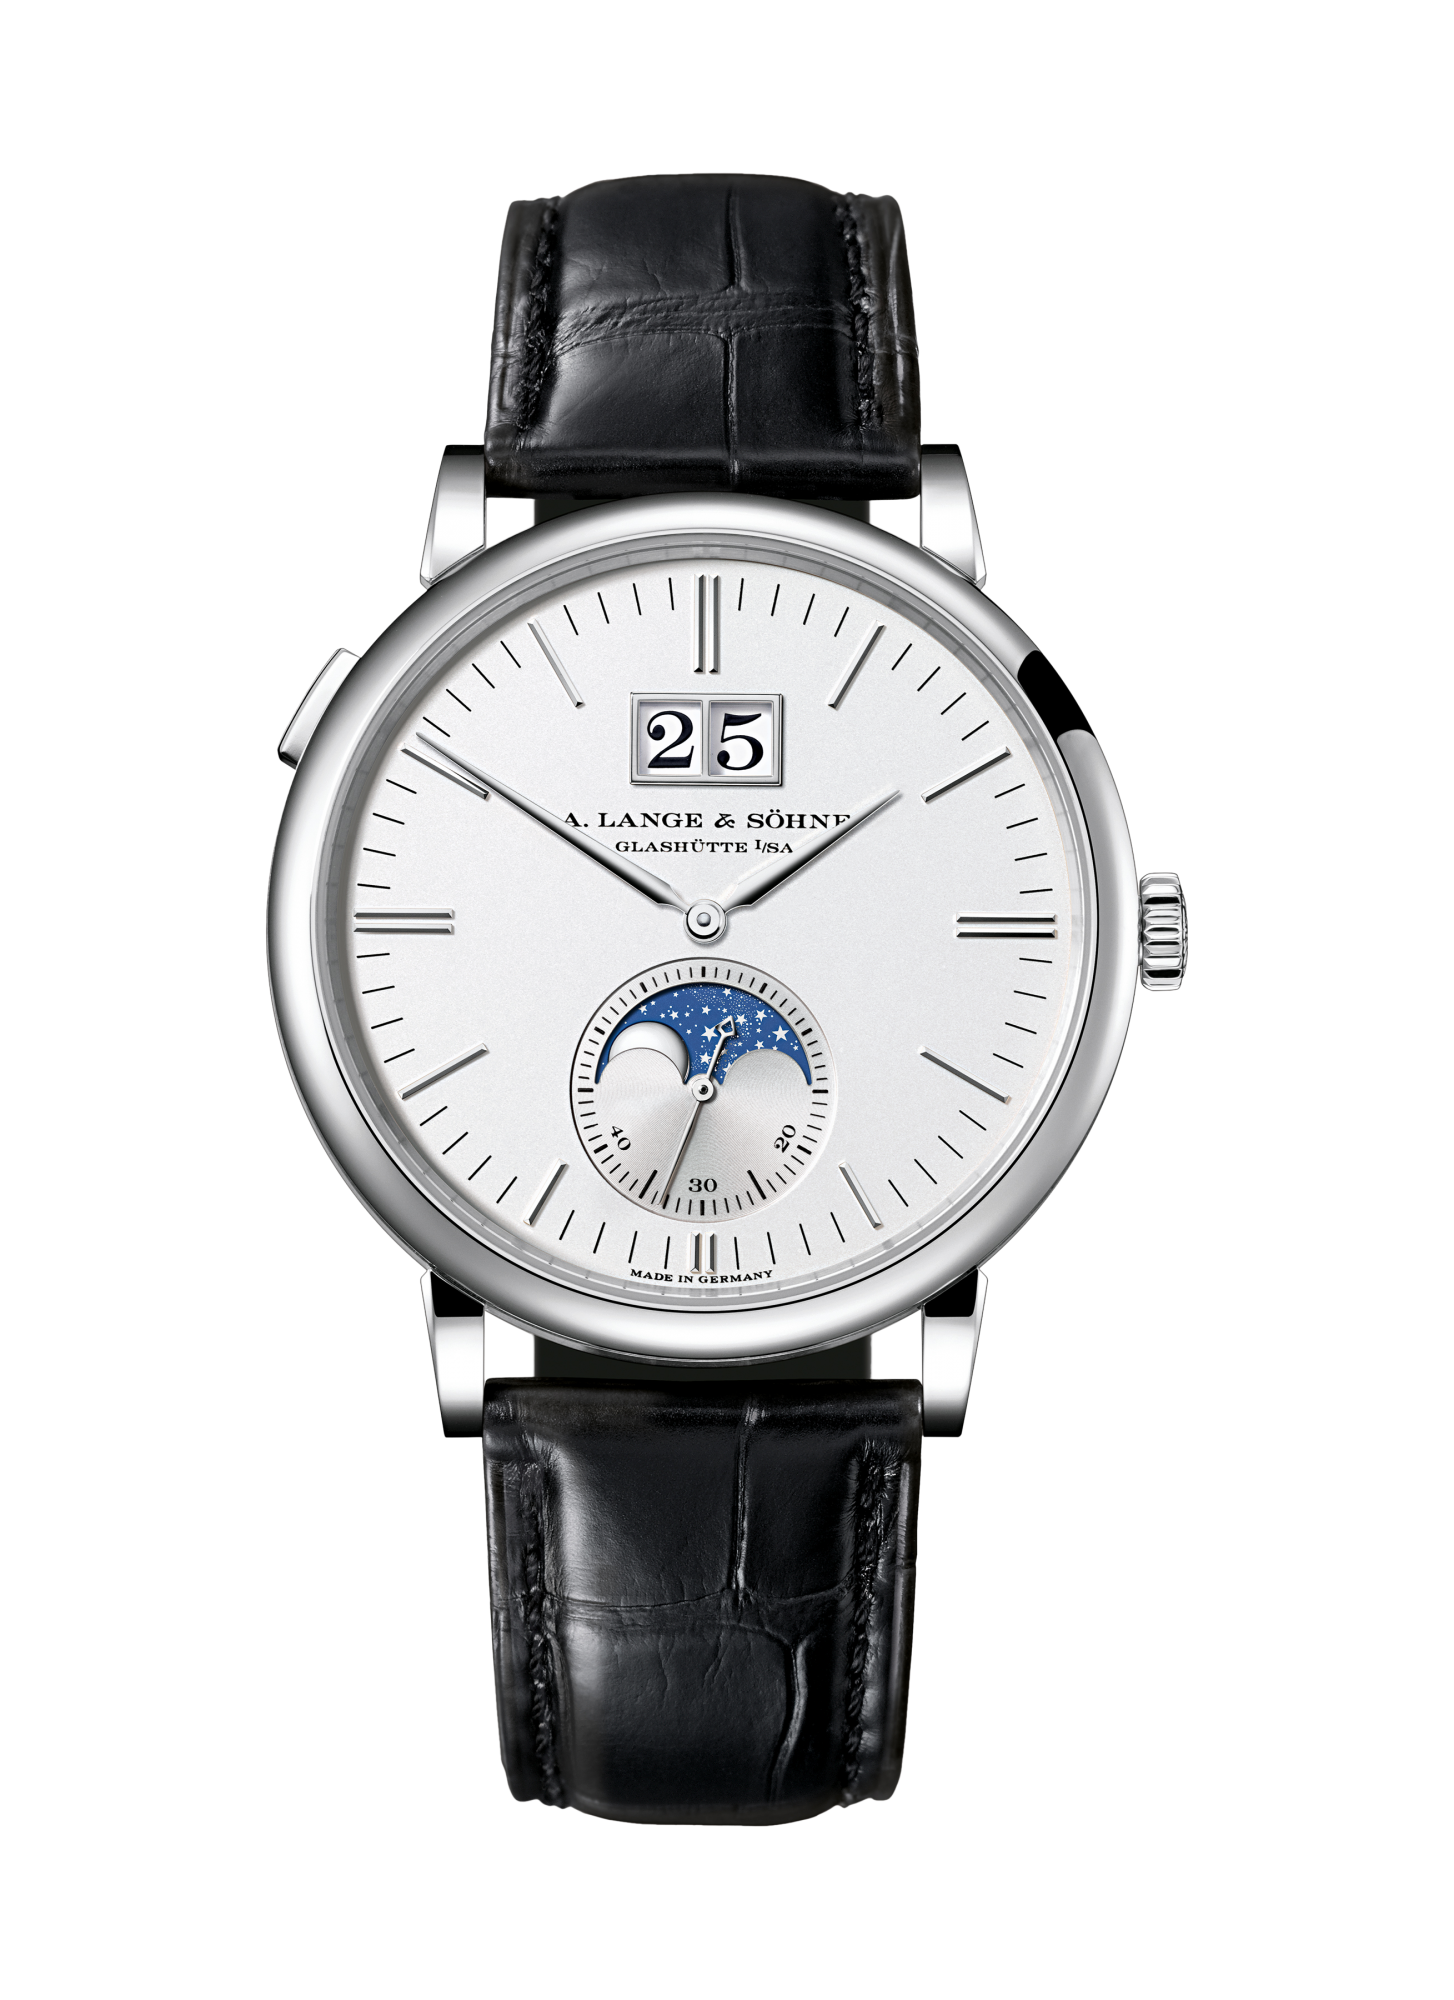 A.L&S Saxonia Moon Phase 384.026